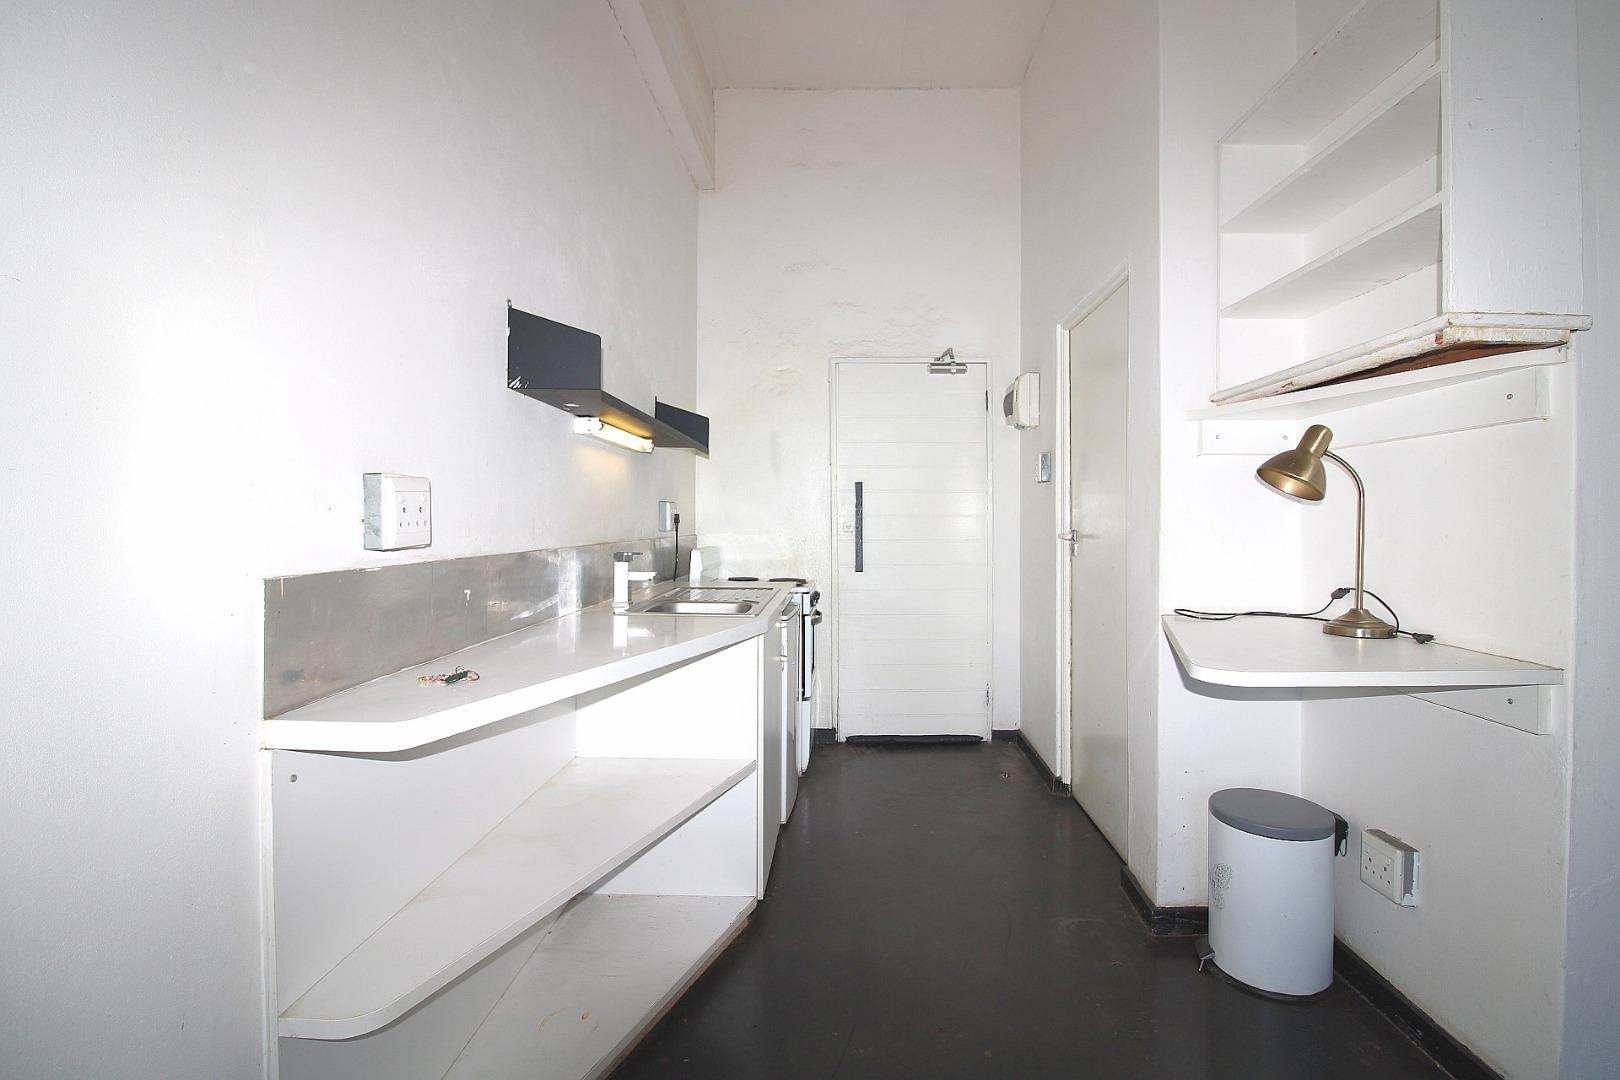 1 Bedroom Apartment for Sale in Maboneng, Johannesburg - Gauteng